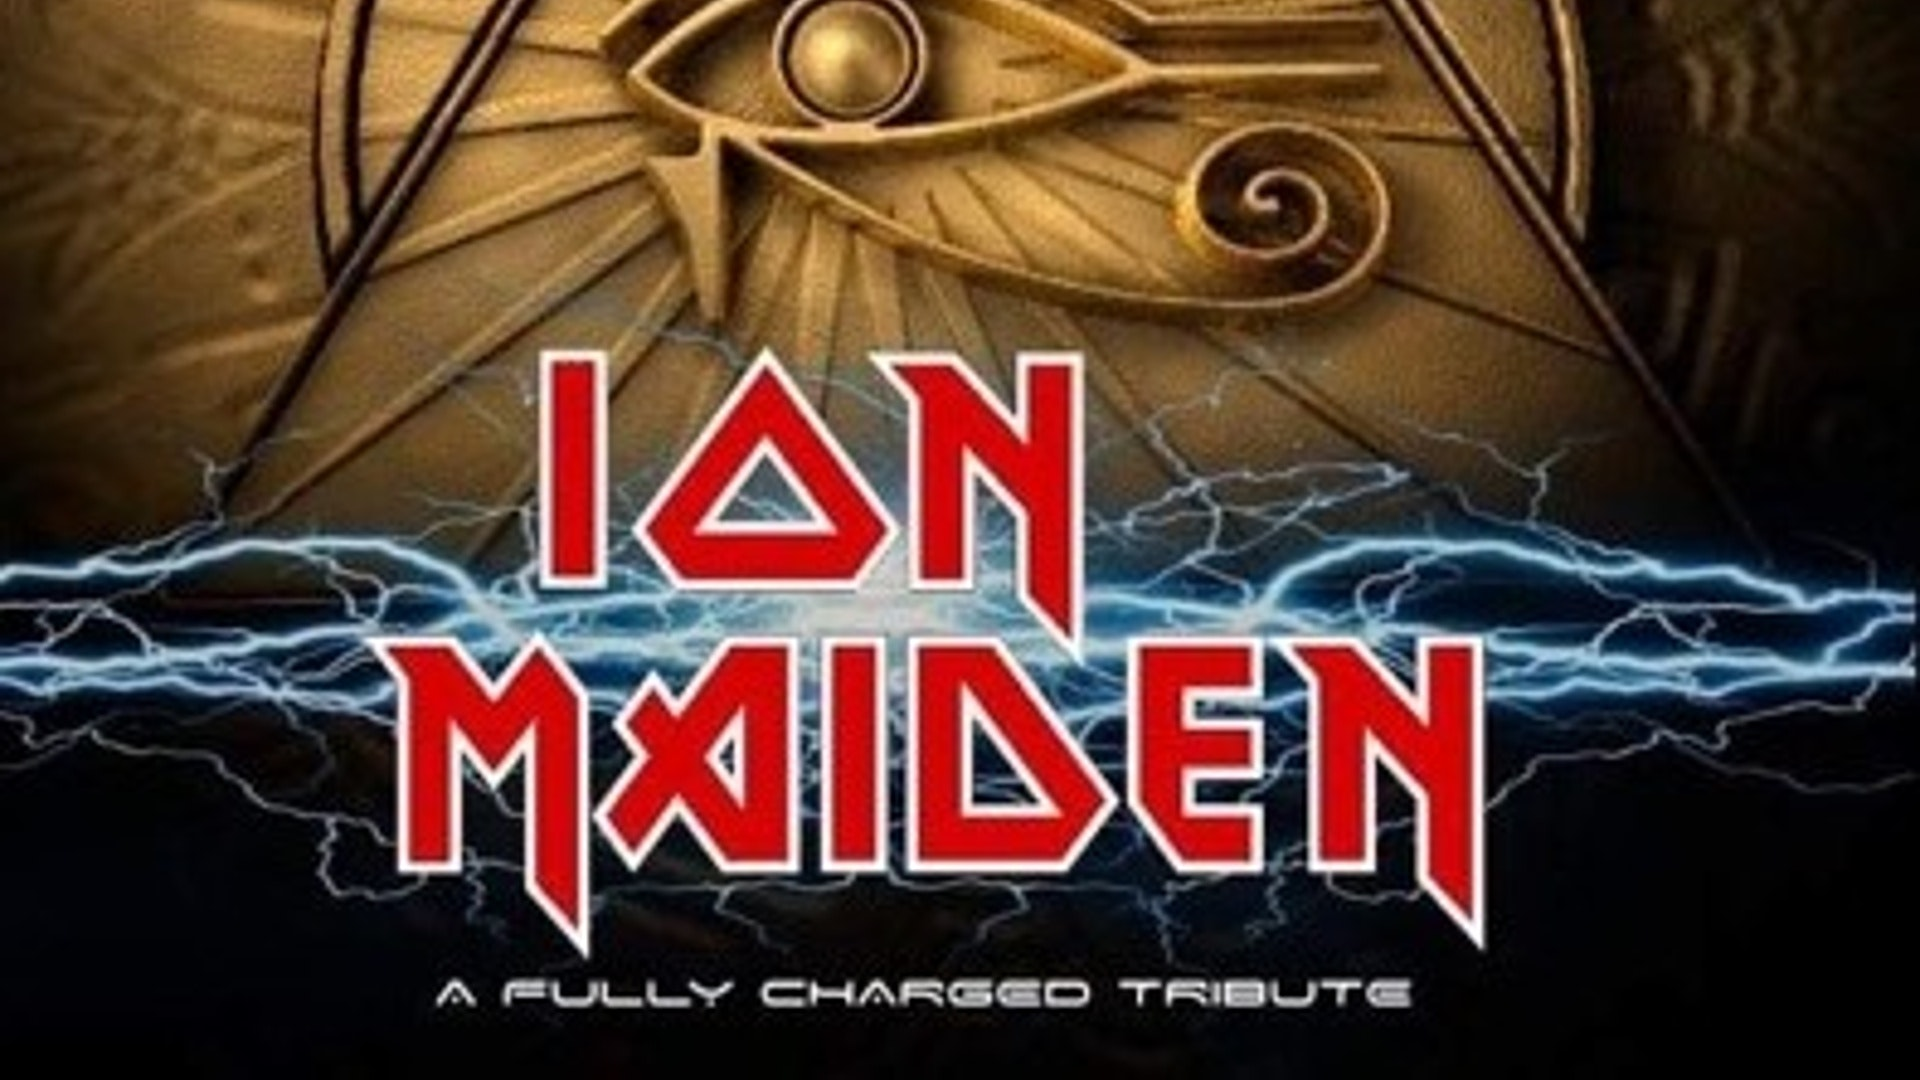 Ion Maiden – A fully charged tribute to Iron Maiden